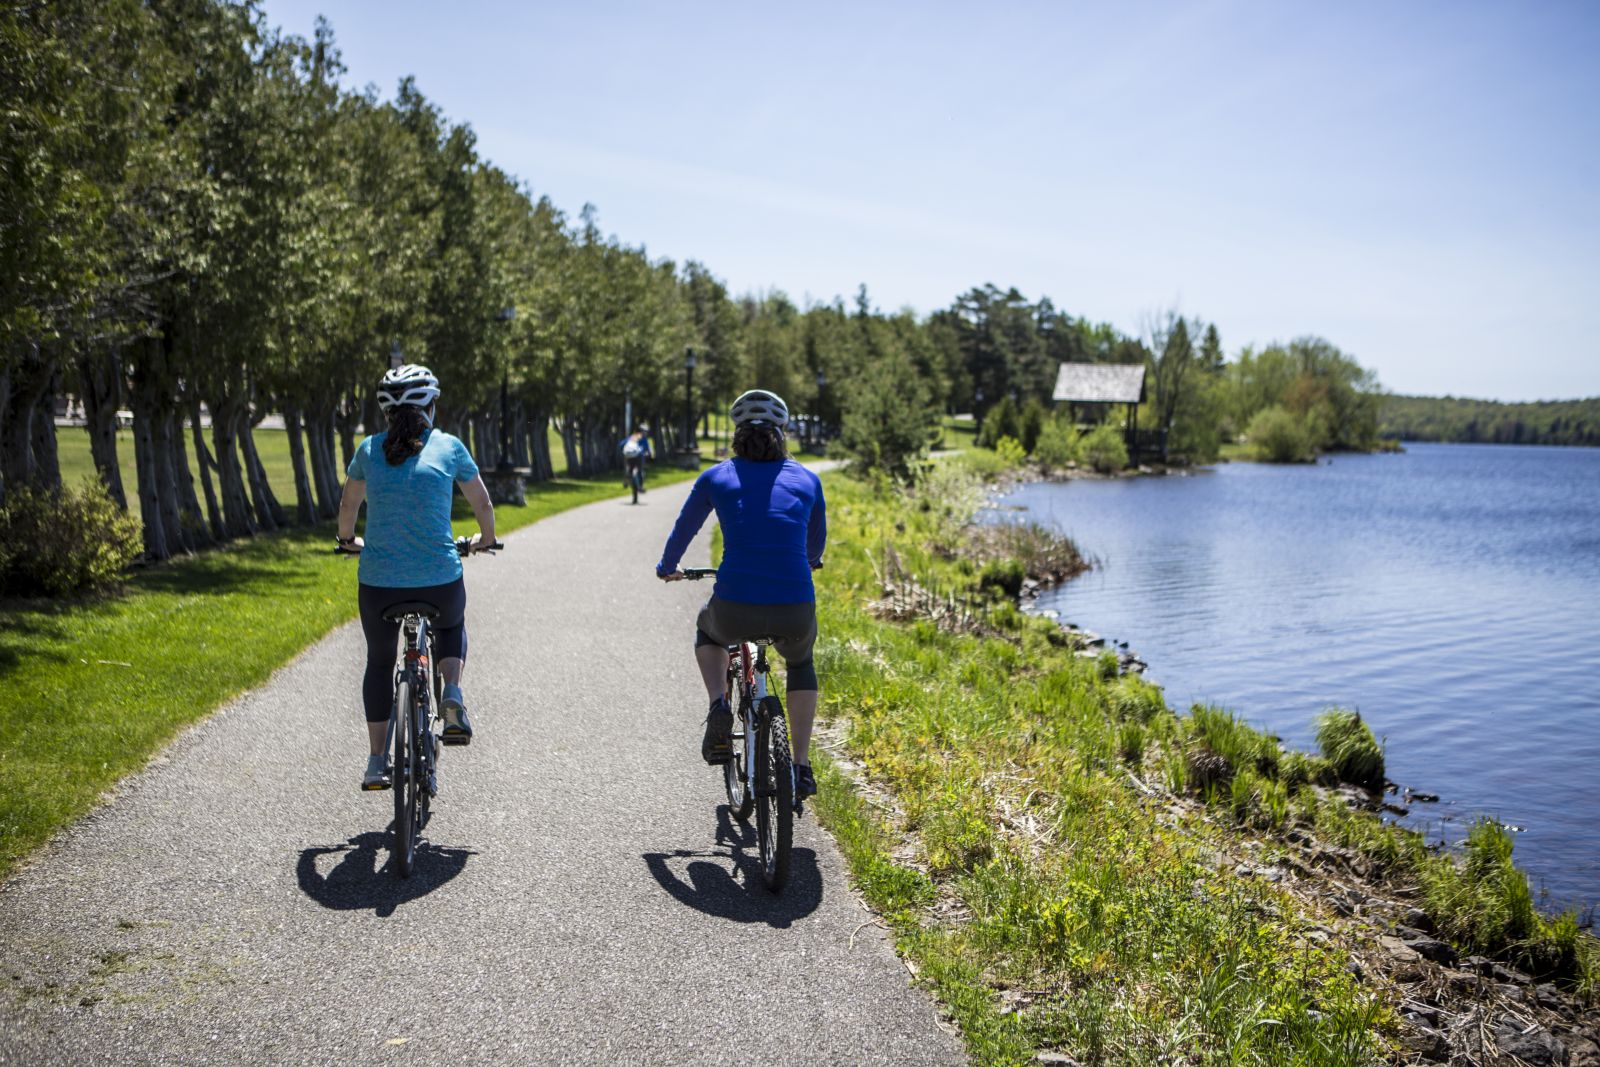 Municipal Park is a great place for biking.